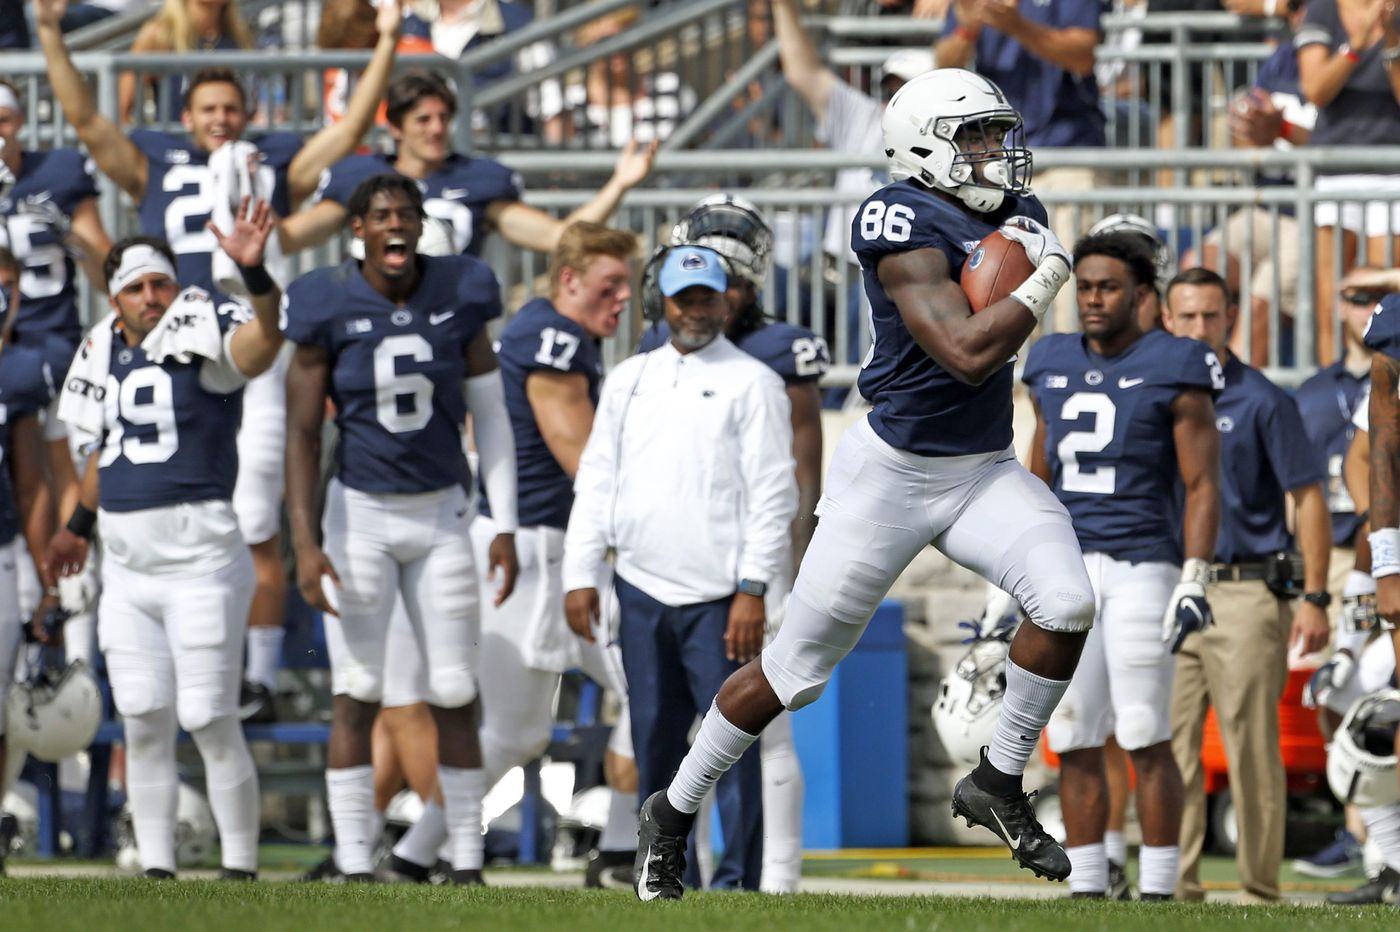 Penn State's receiving corps has questions for the future